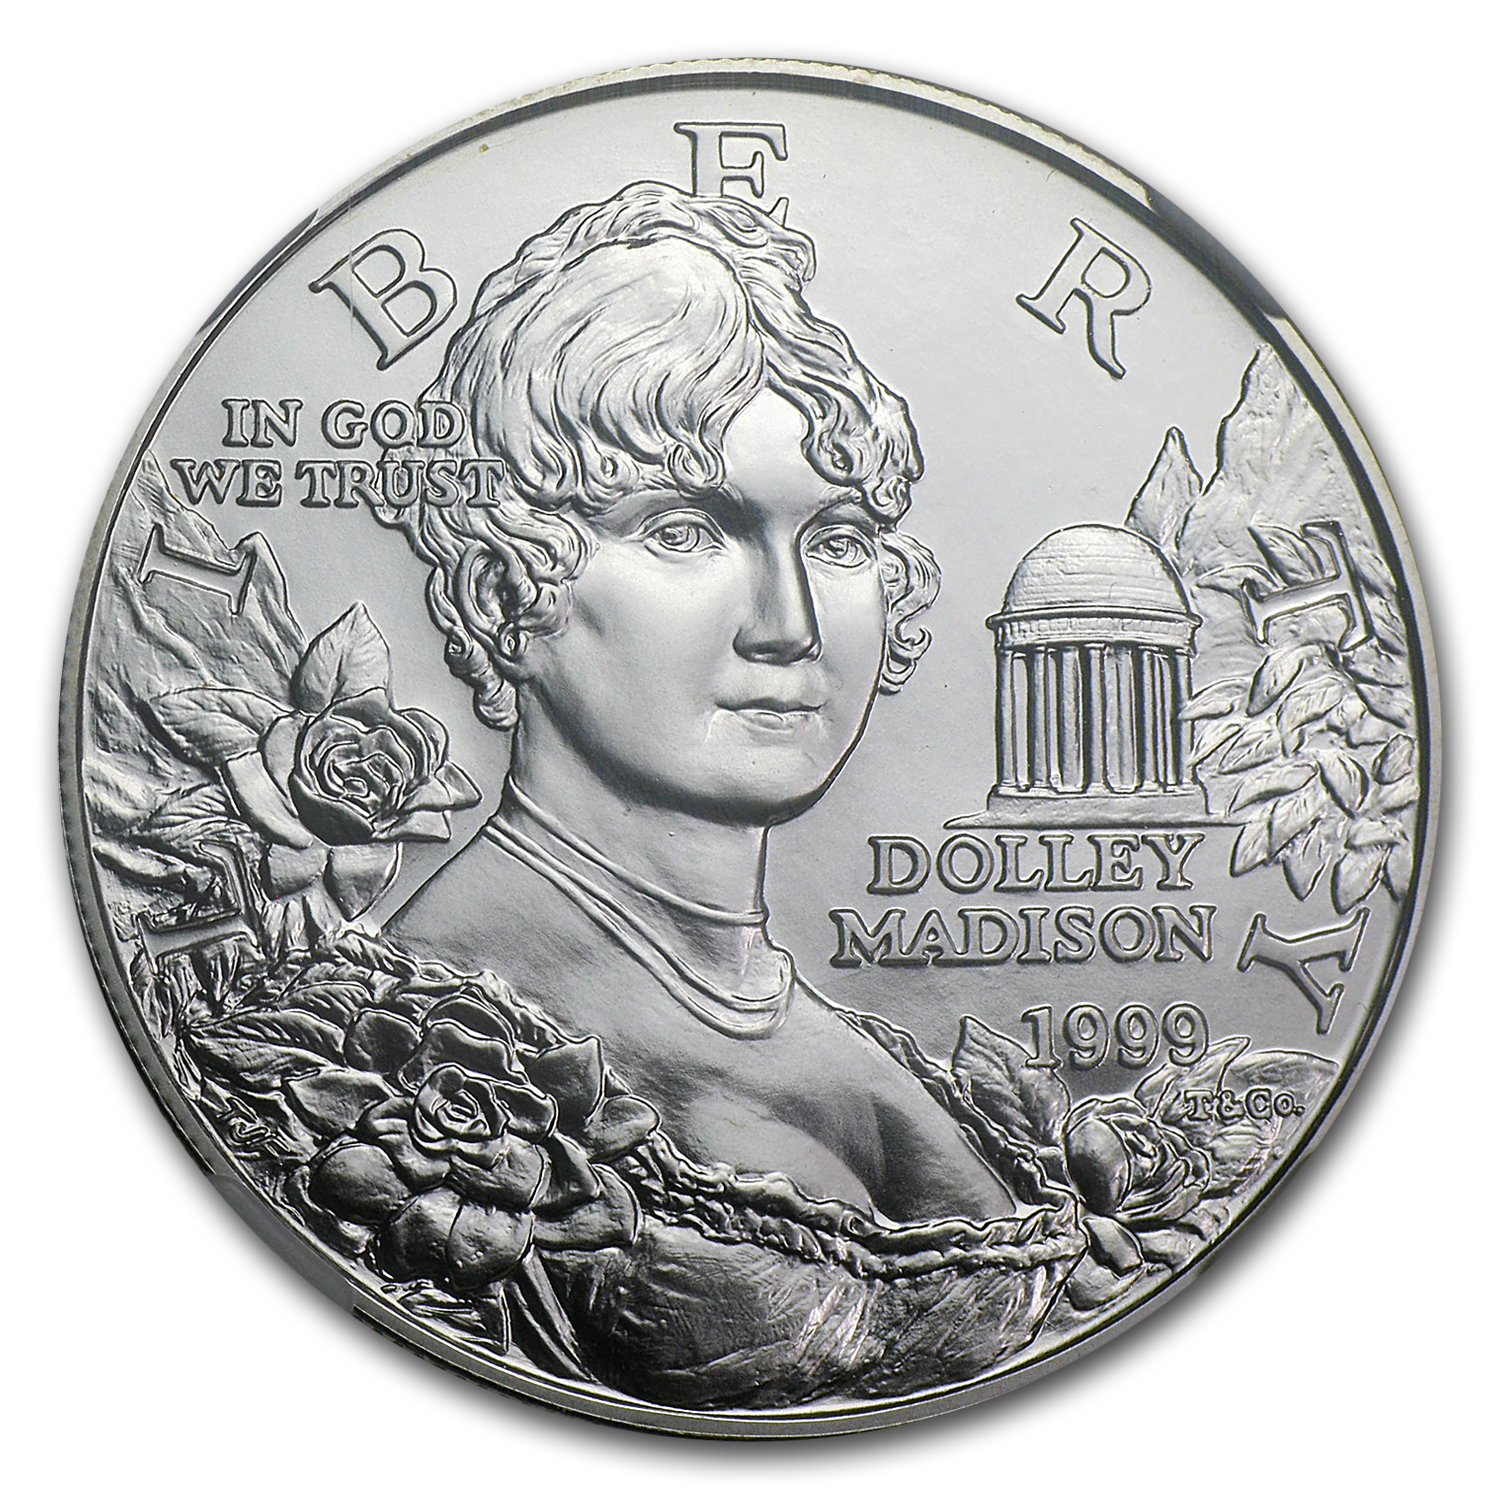 1999-P Dolley Madison $1 Silver Commemorative - MS-70 NGC